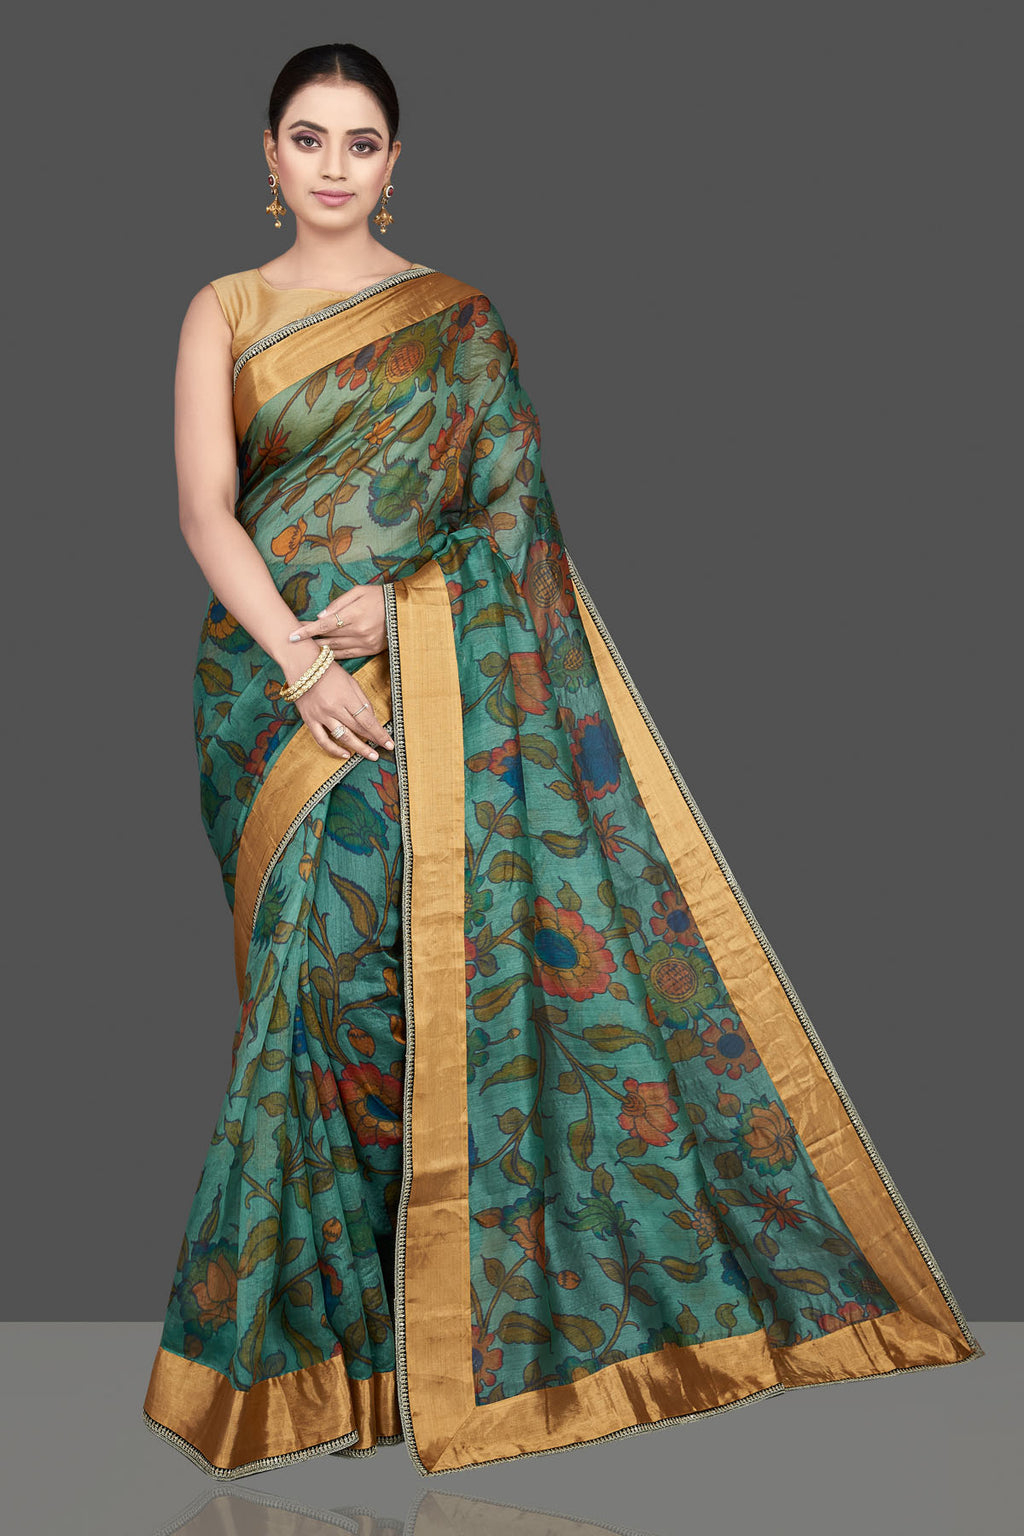 90L067 Green Kalamkari Print Silk Sari with Embroidered Golden Border